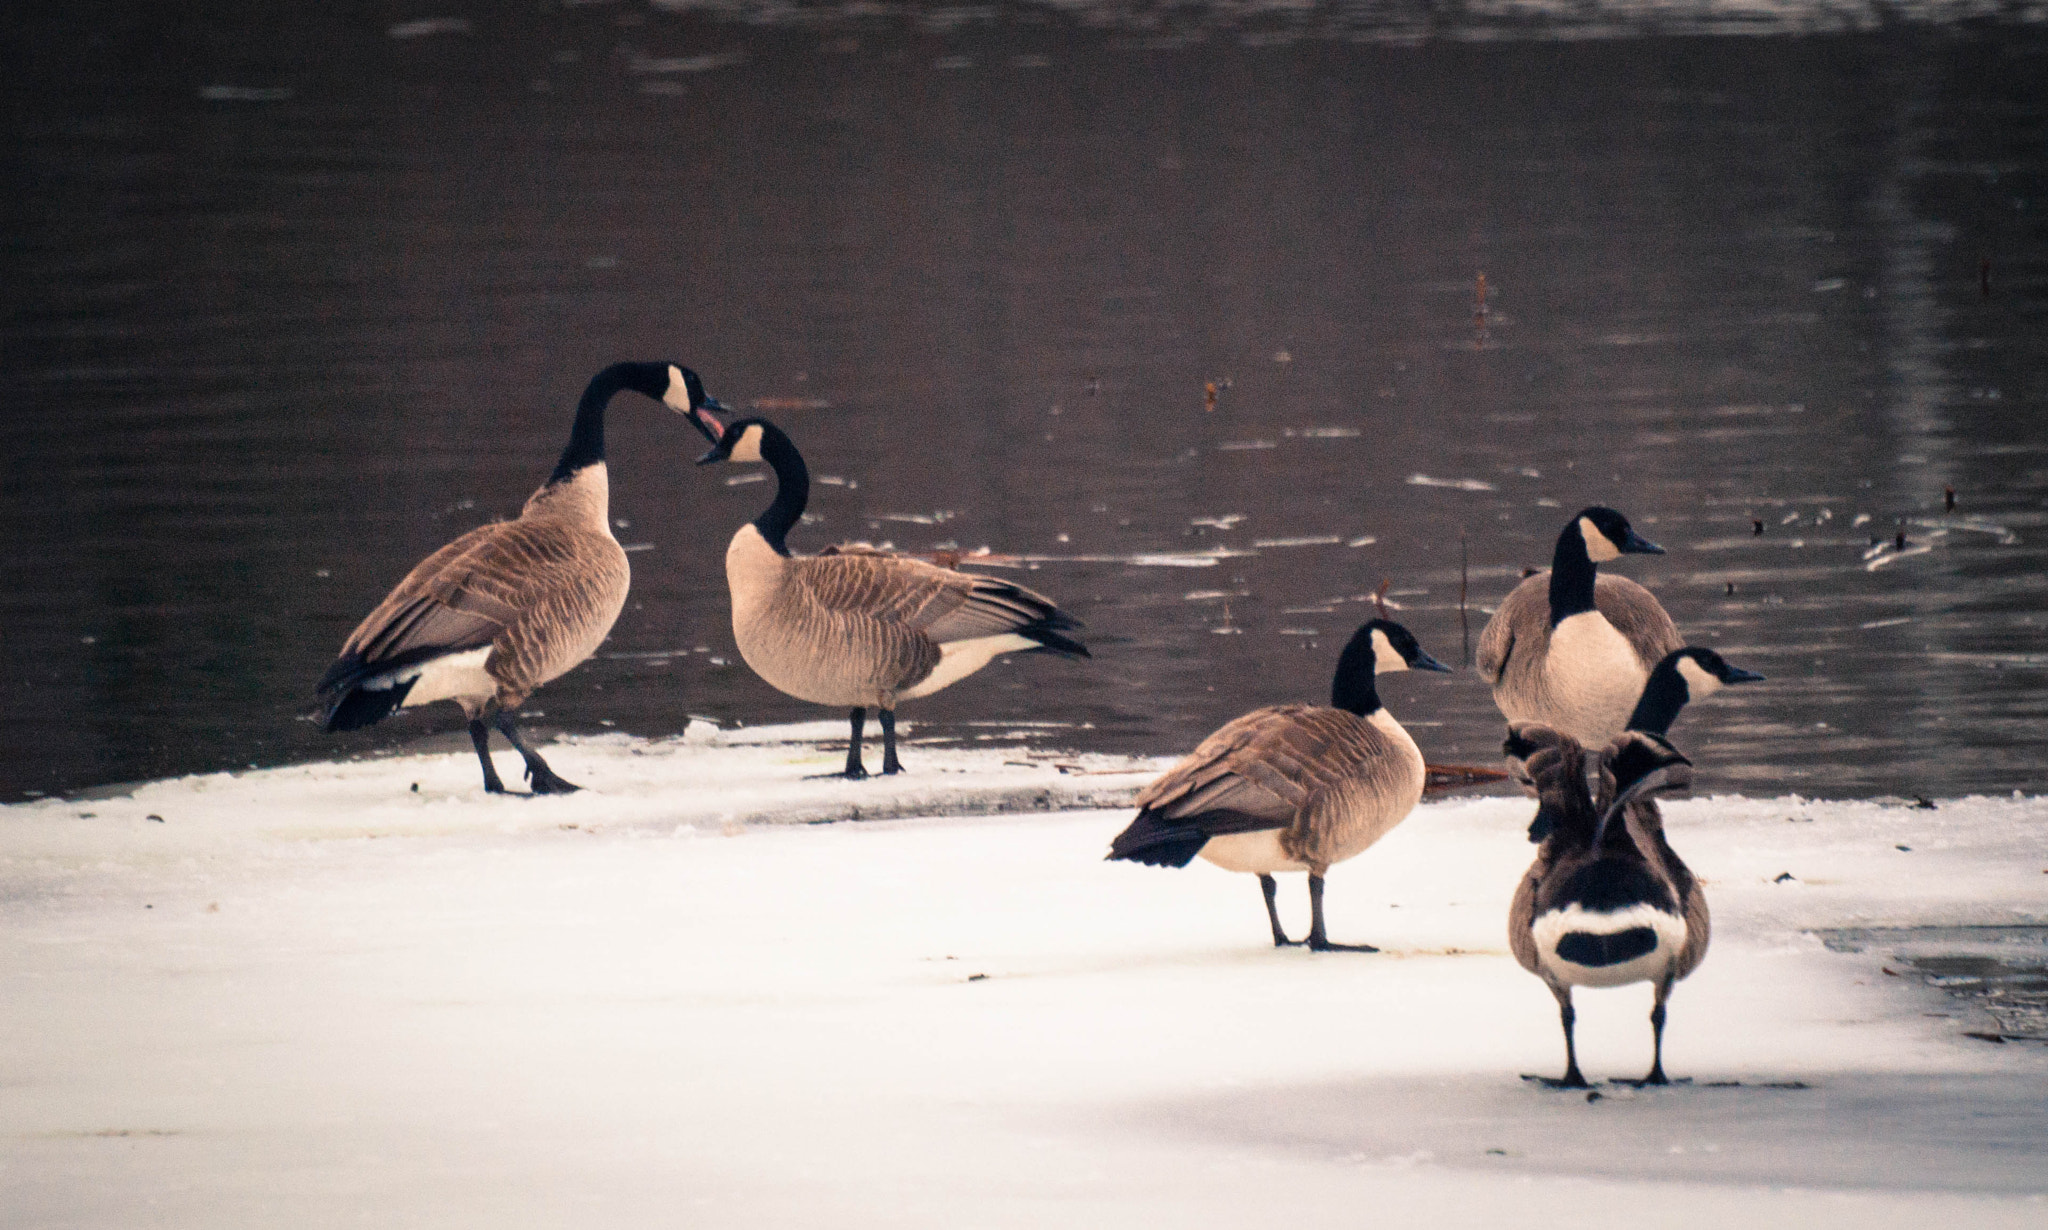 Photograph Honking by Jackie Hartleben on 500px